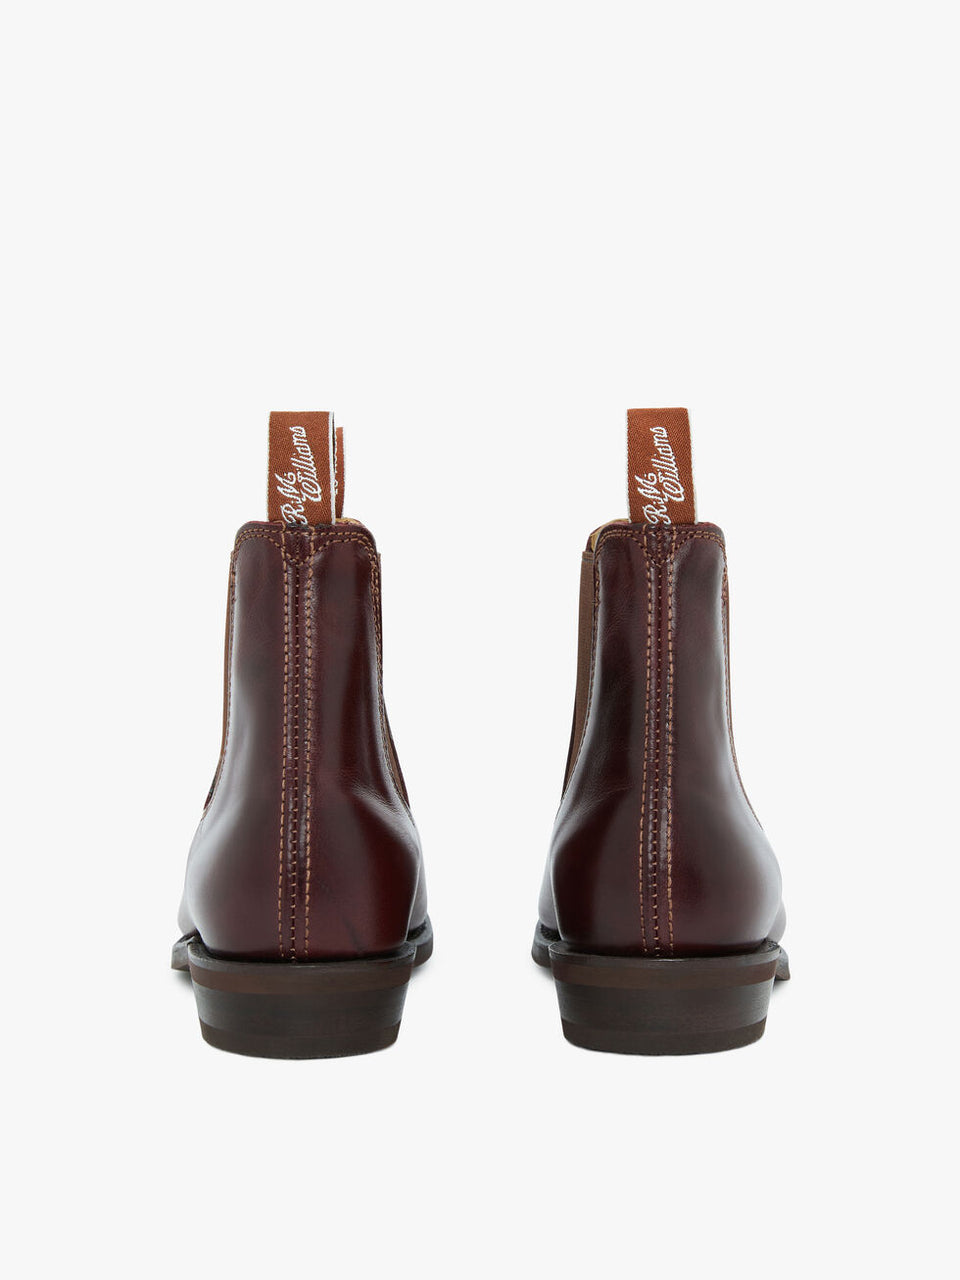 Adelaide Boots Oxblood D Fit